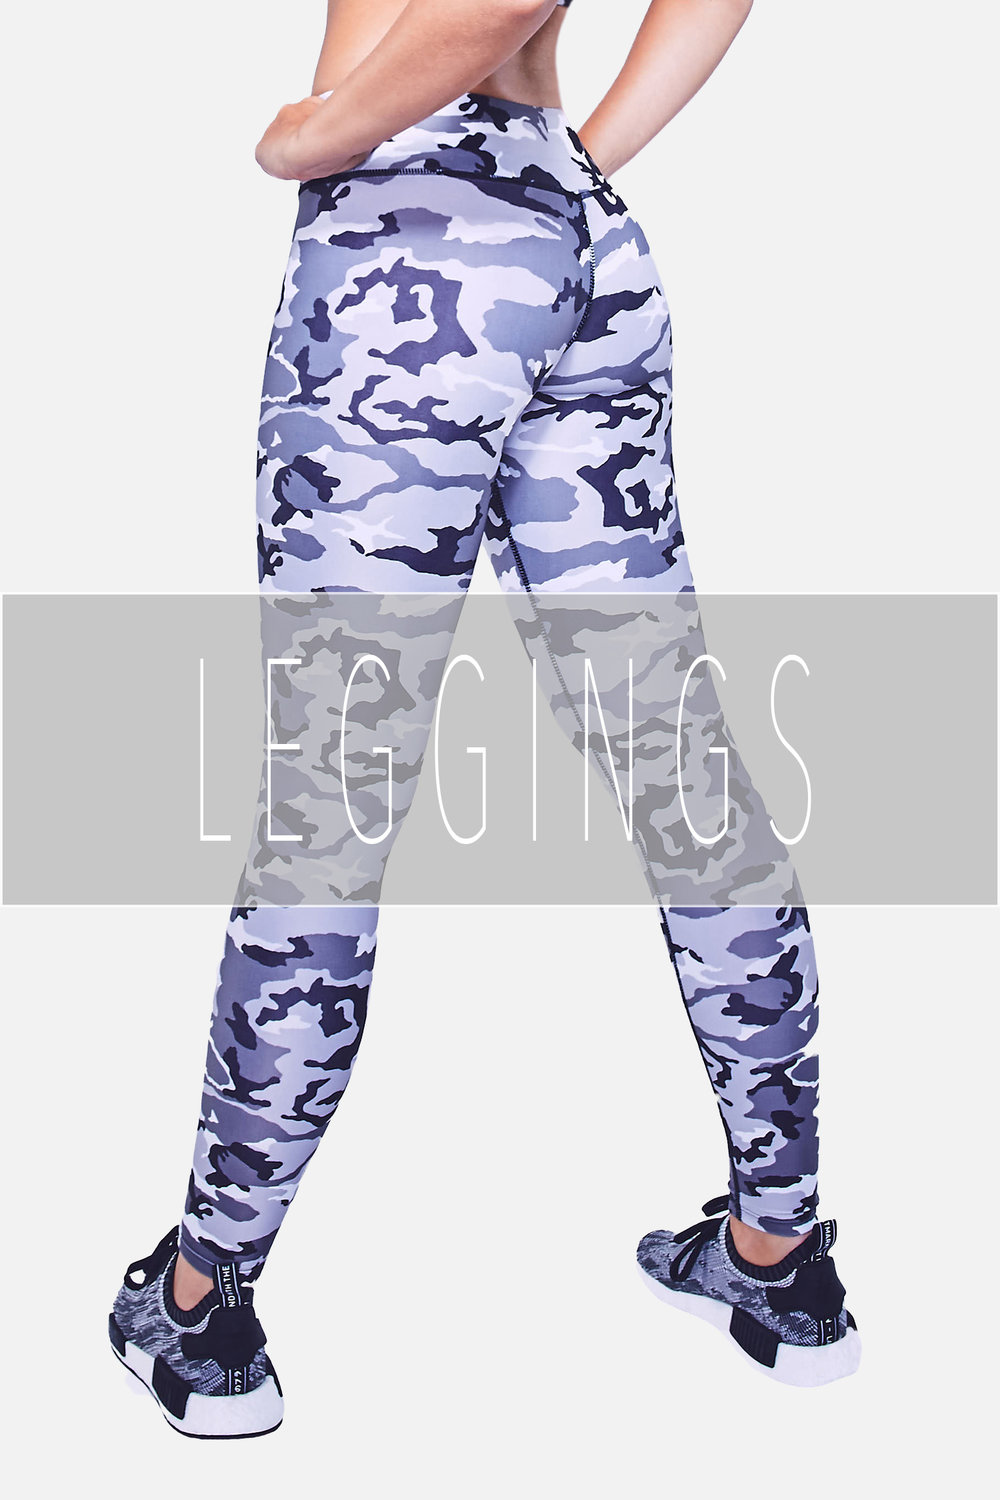 grey_leggings_side_product_section.jpg